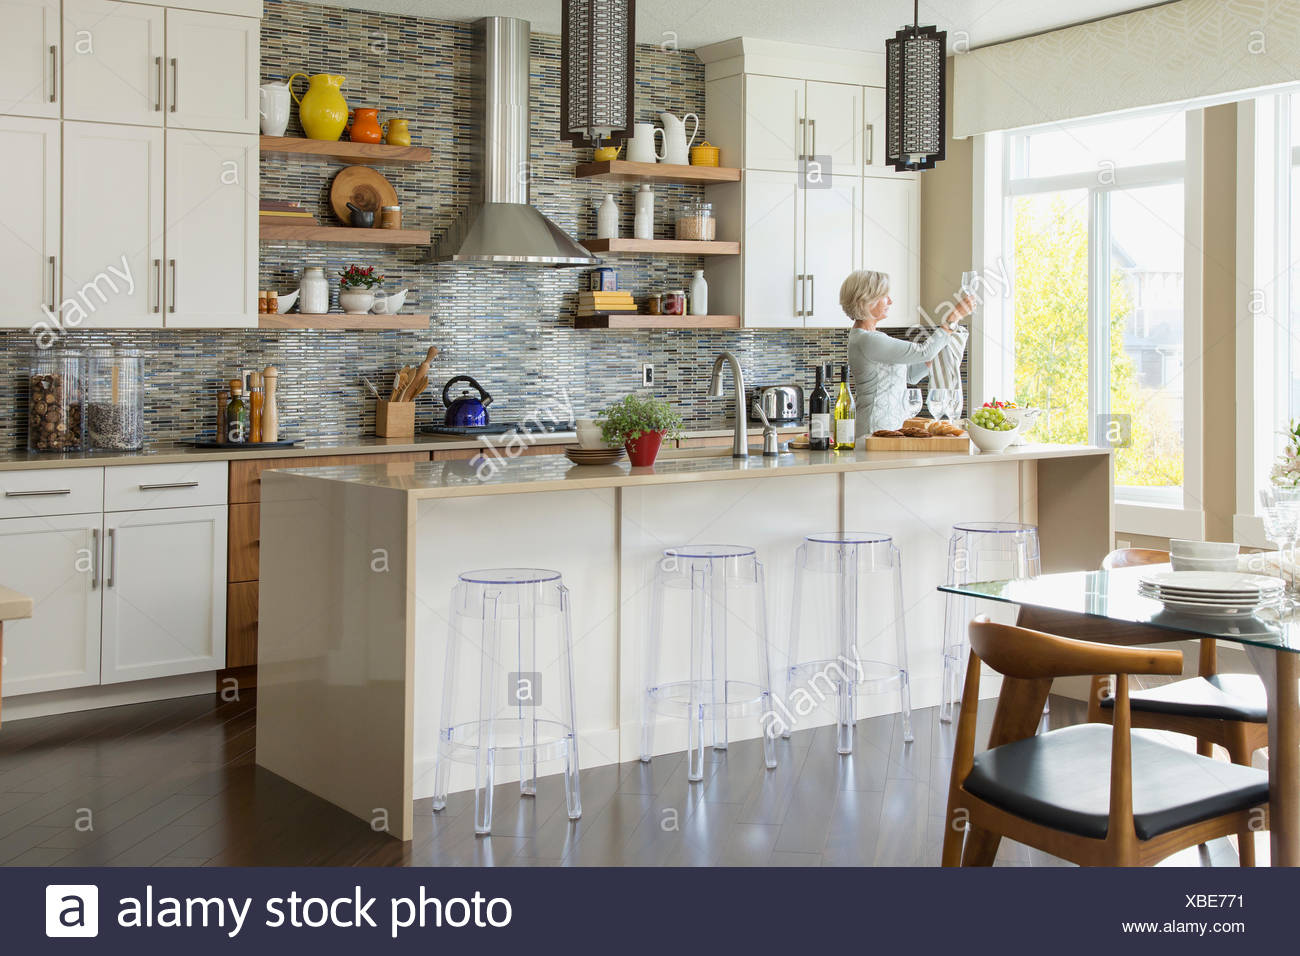 Woman cleaning wine glasses in kitchen - Stock Image